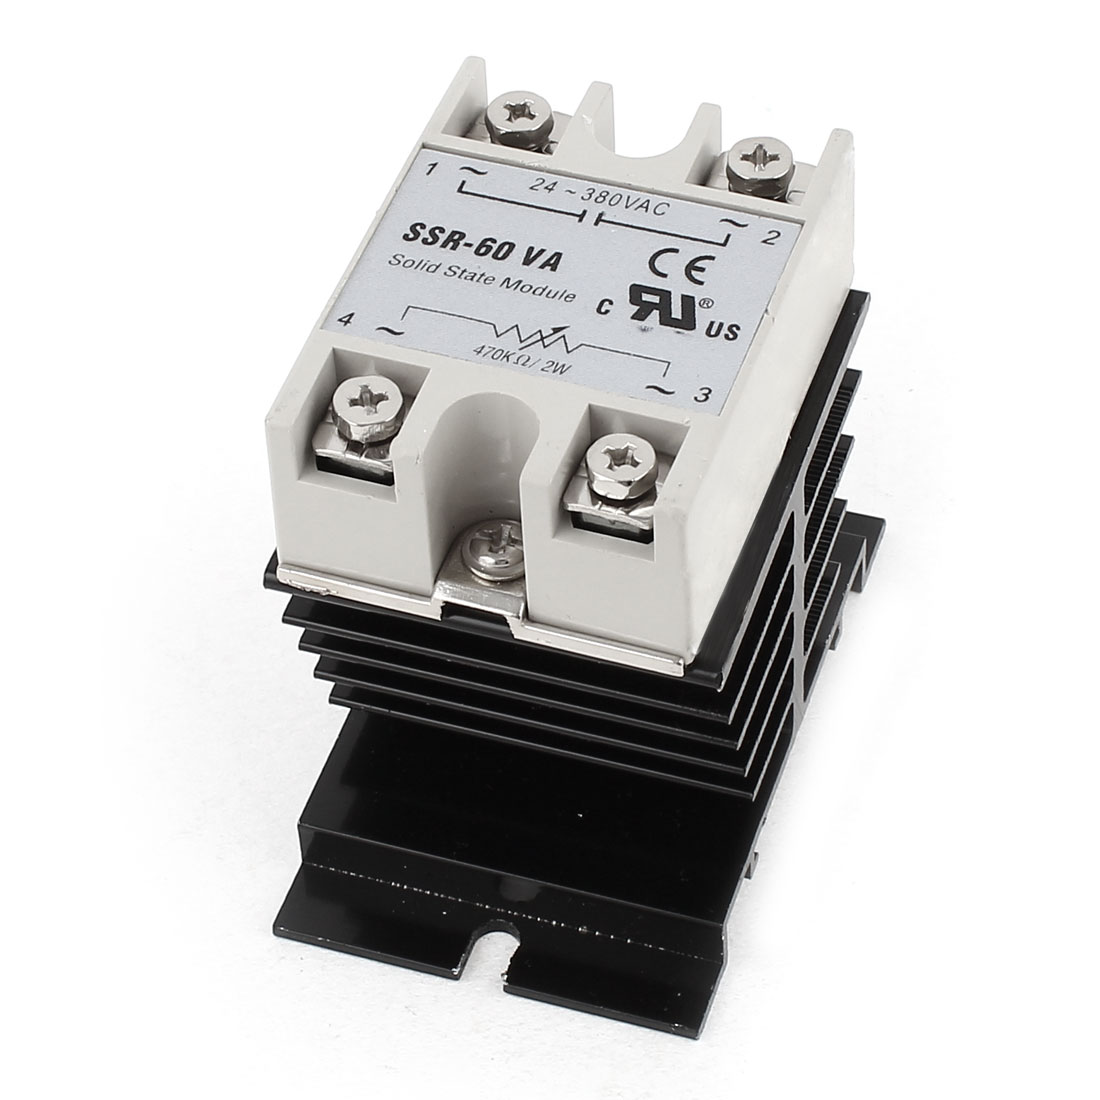 470K Ohm 2W to AC 24-380V 60A Black Aluminum Heat Sink 4 Screw Terminal Single Phase SSR Solid State Relay